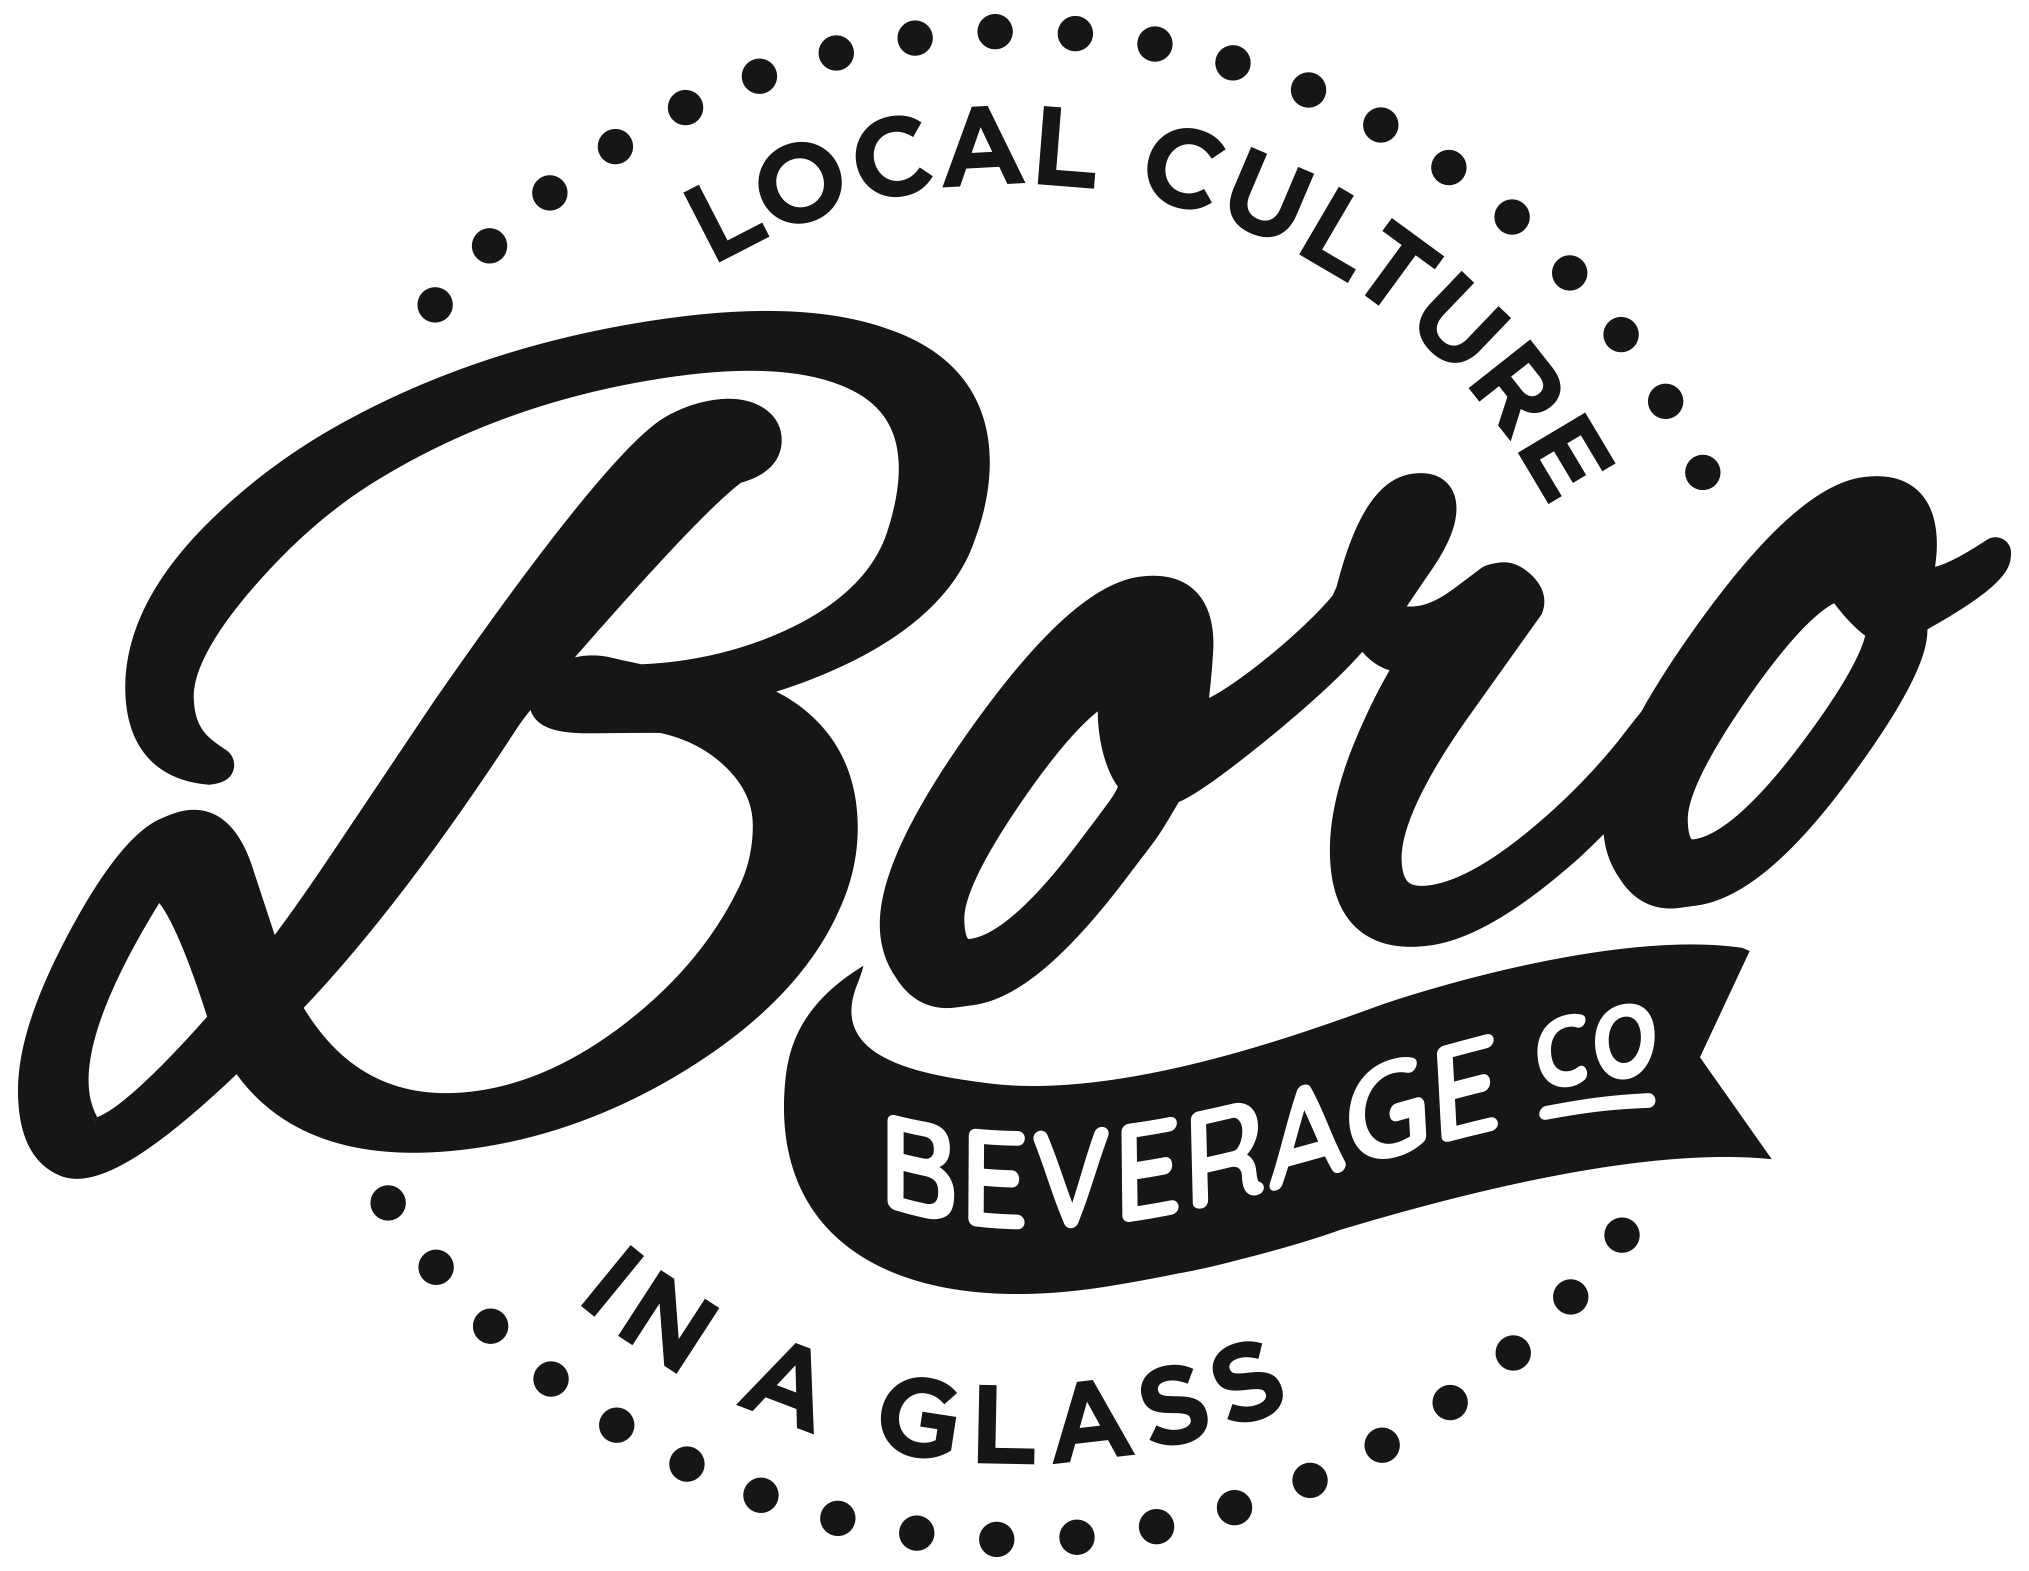 We Make Draft Kombucha Shrubs And Craft Syrups Sold At The Farmers Markets And Throughout Our Community